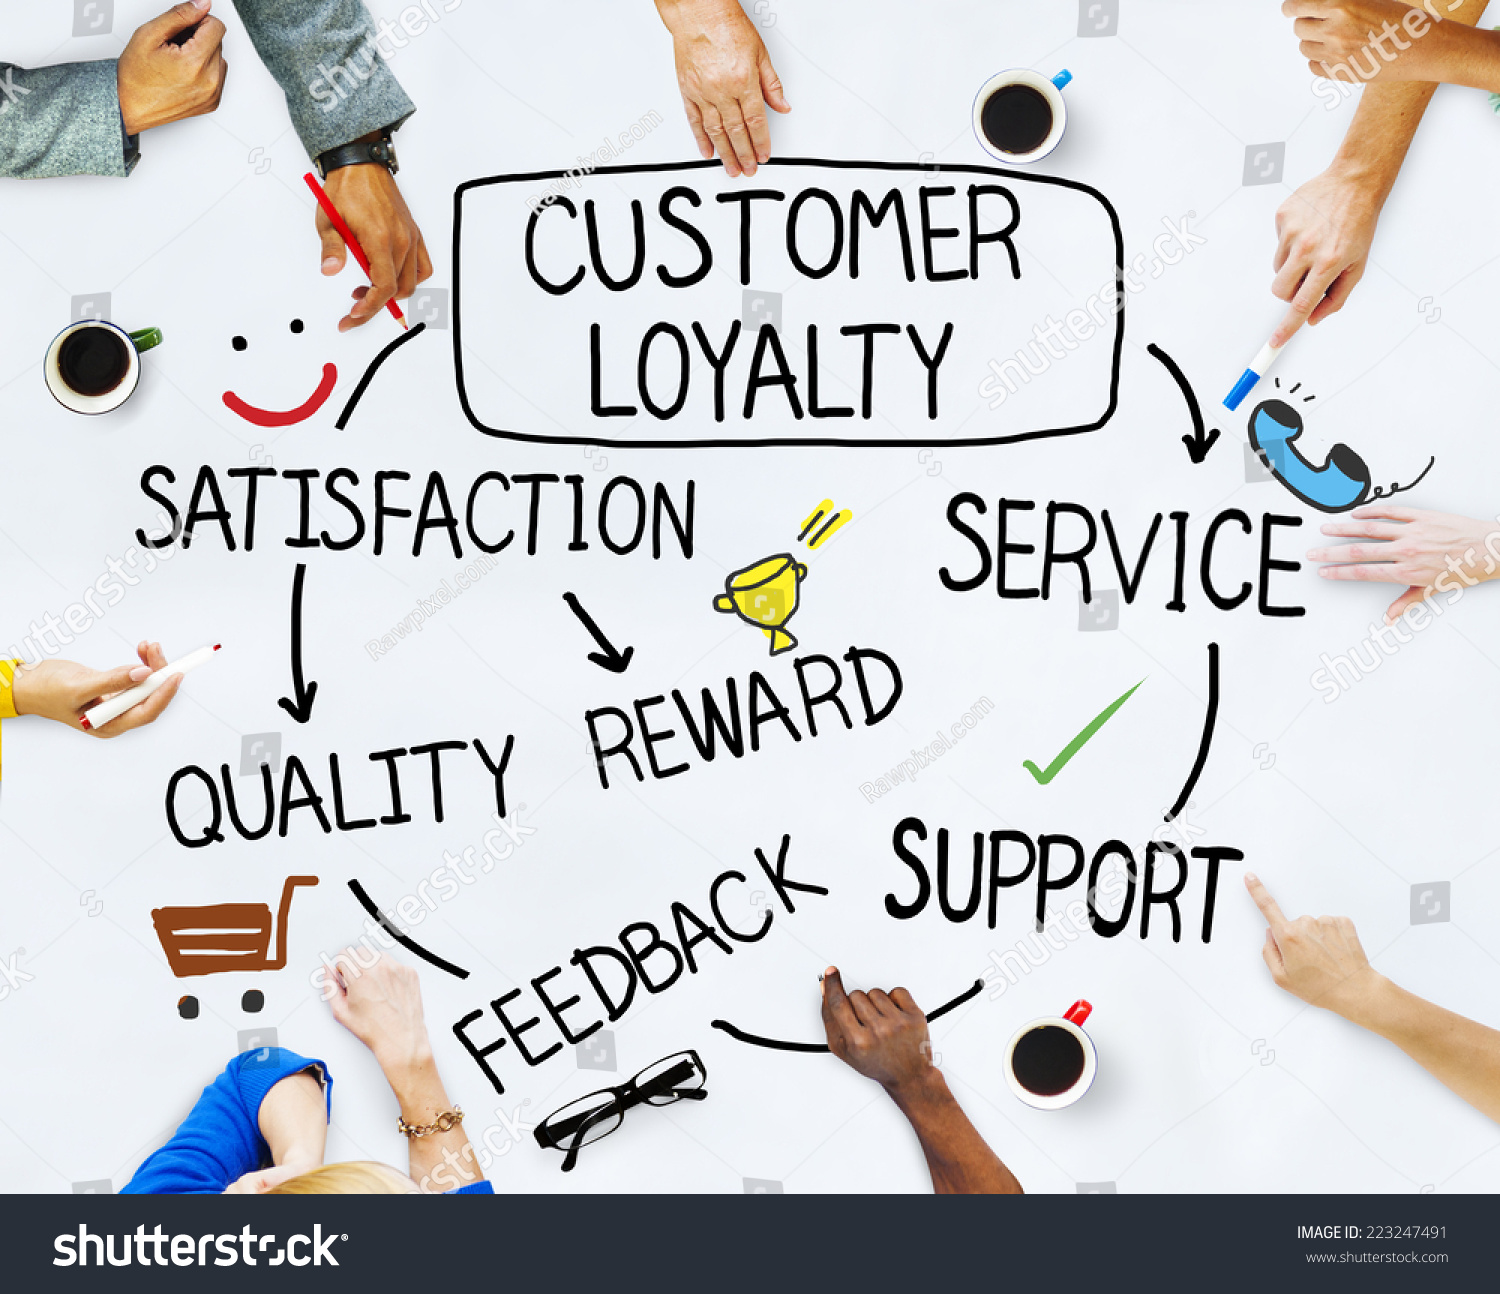 Concept of customer loyalty